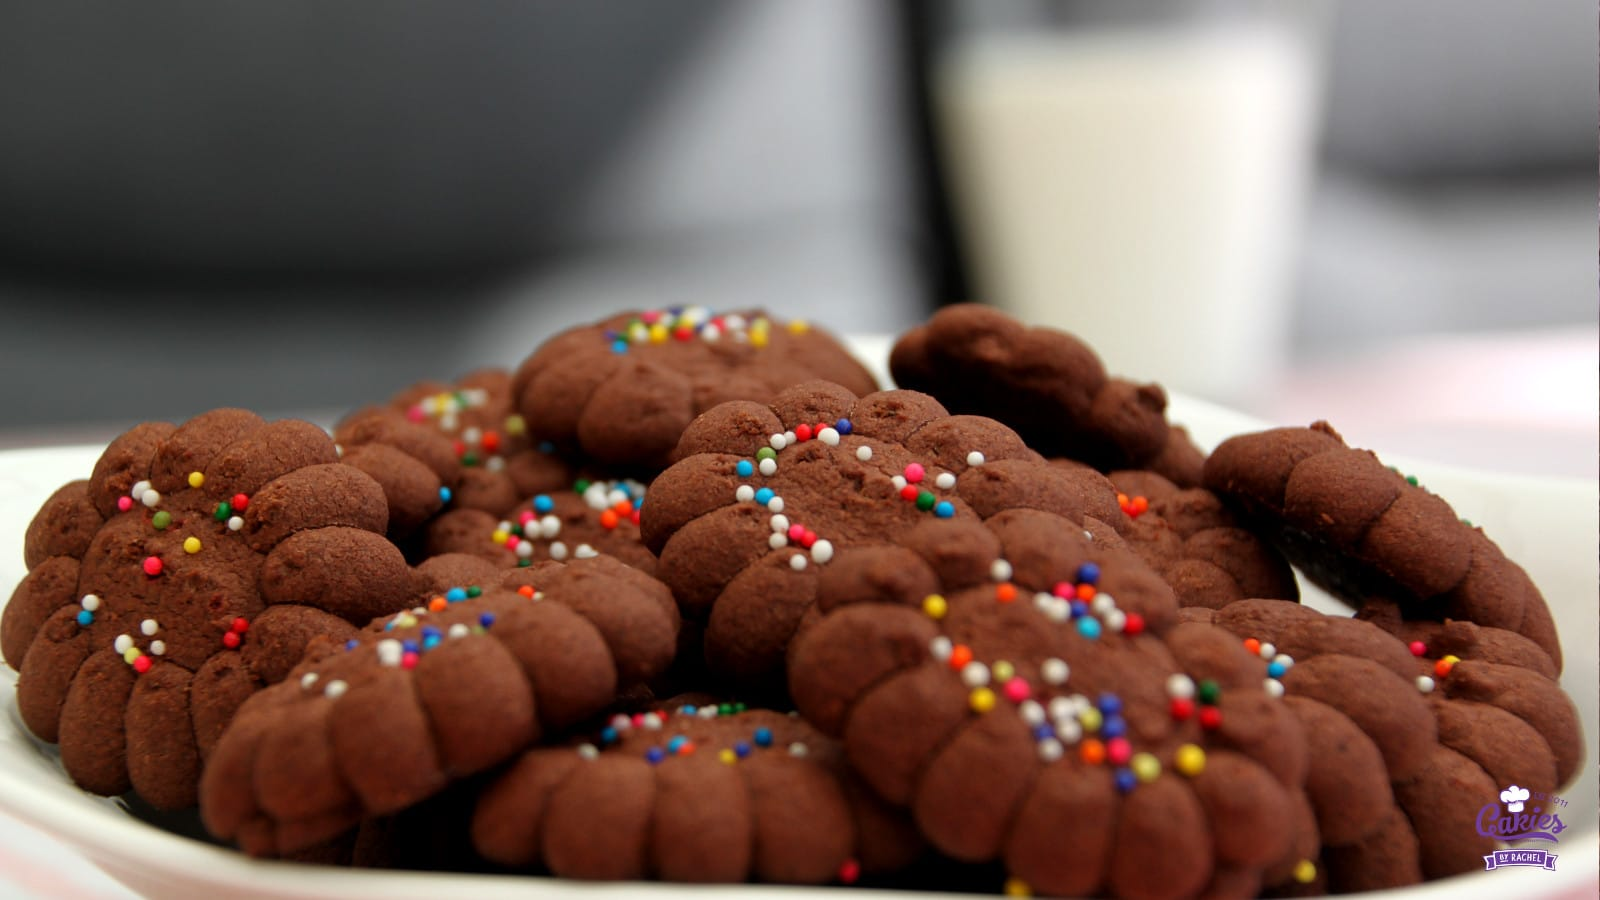 Gluten Free Chocolate Cornflour Cookie Recipe - Brownzena